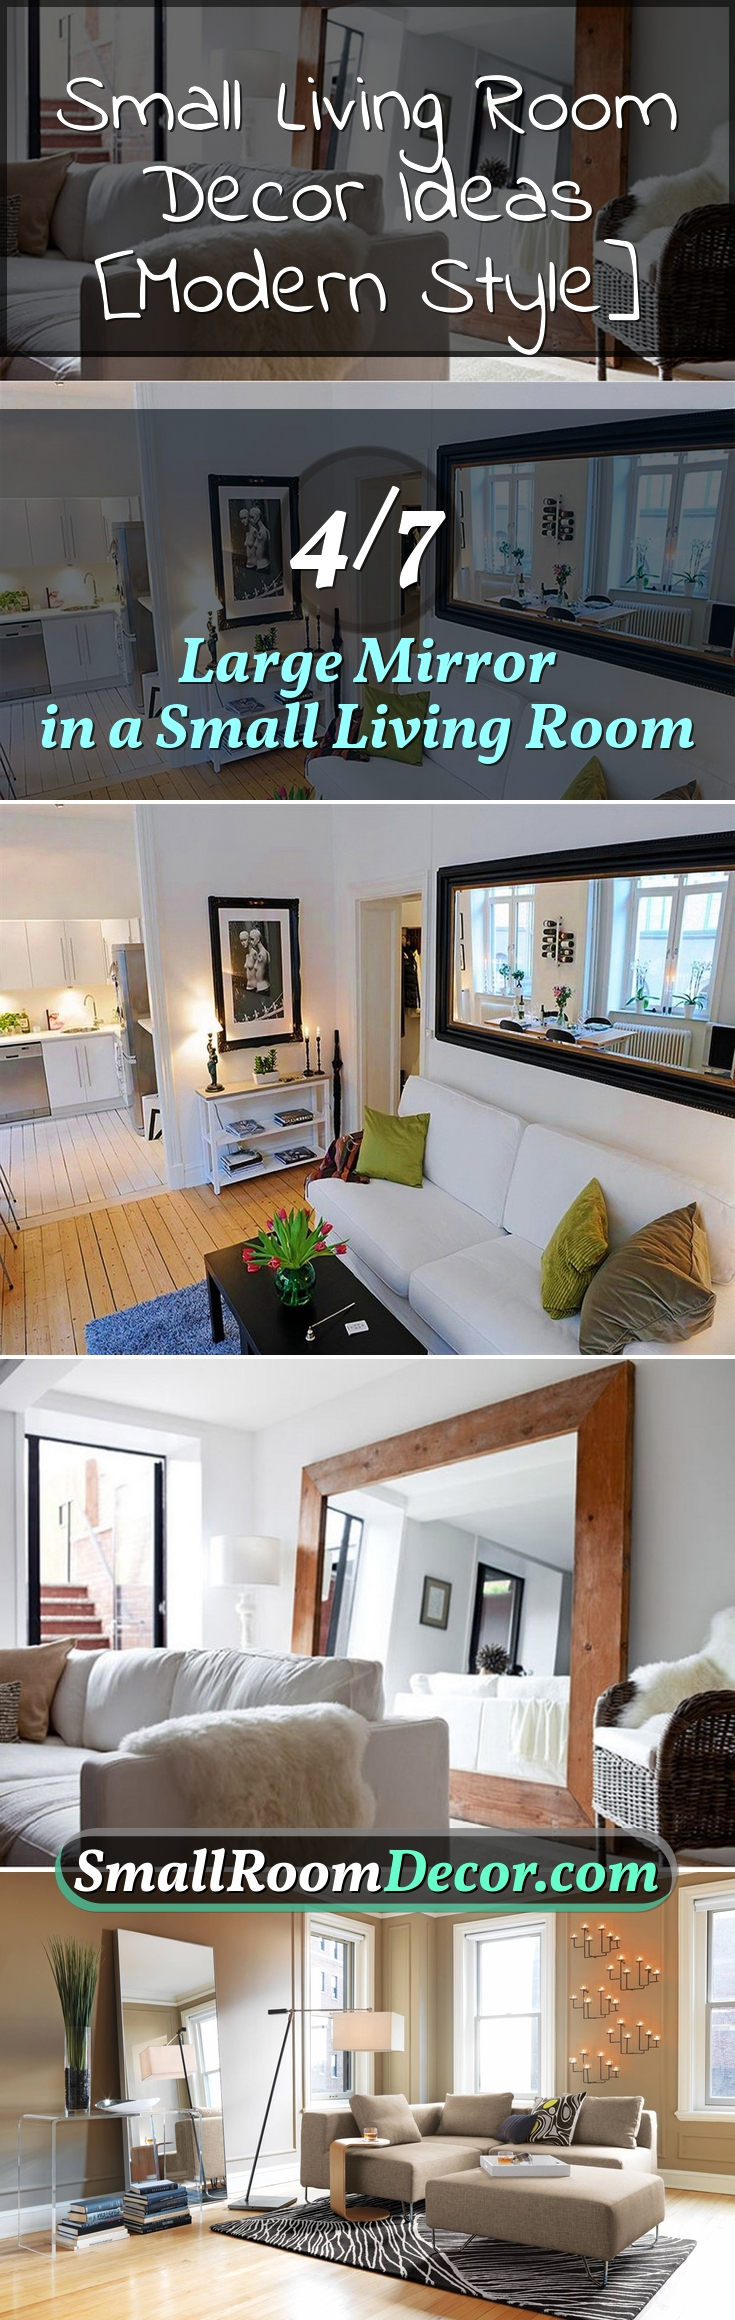 7 Small Living Room Decor Ideas